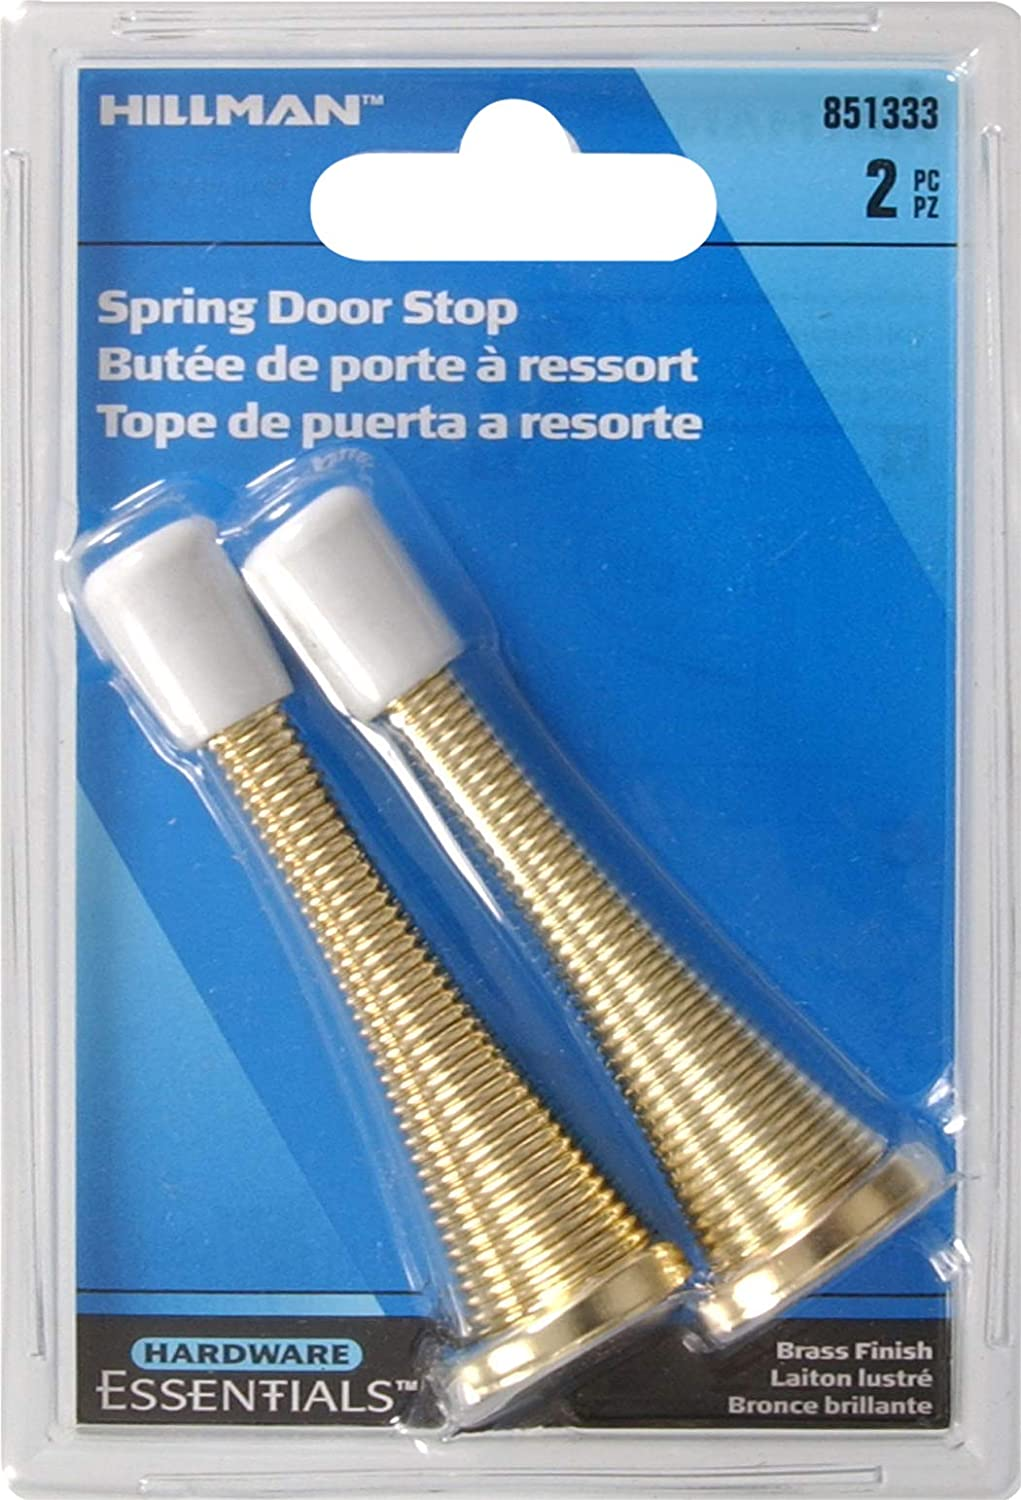 Hillman Hardware Essentials 851333 Spring Door Stops Brass 2 pack